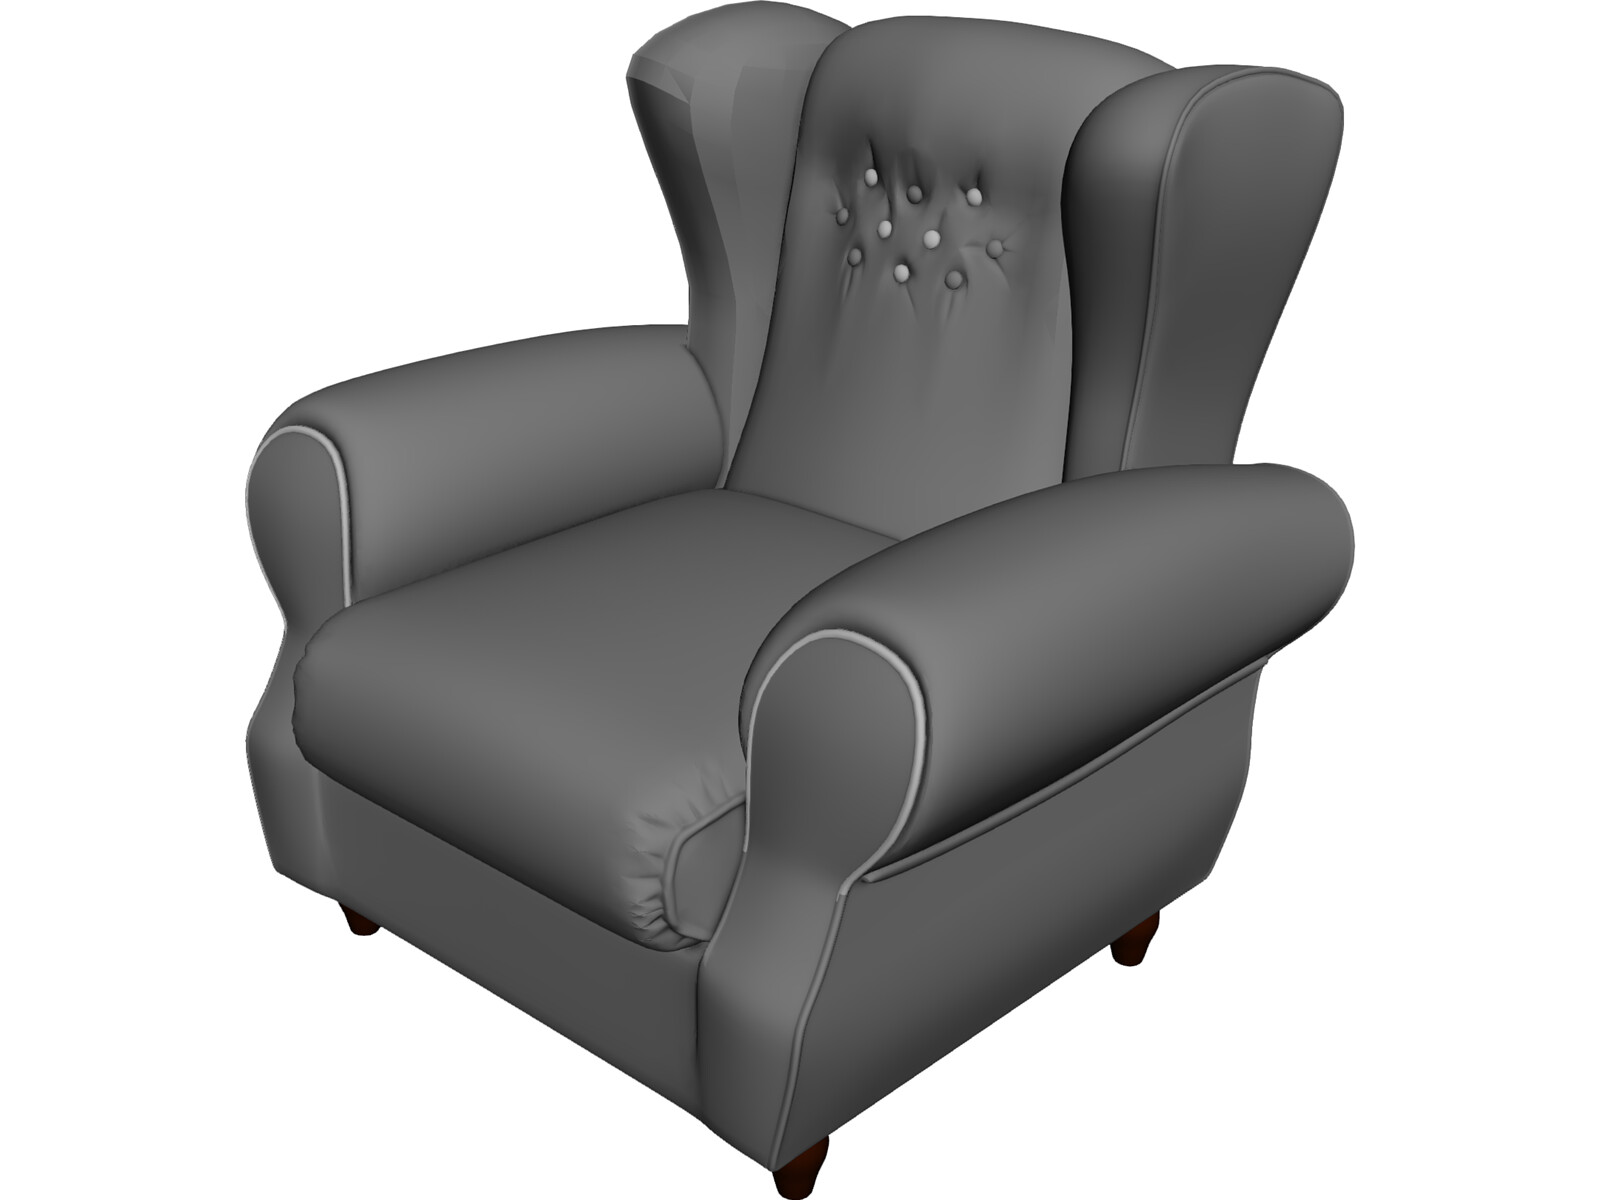 Armchair Old Fashioned